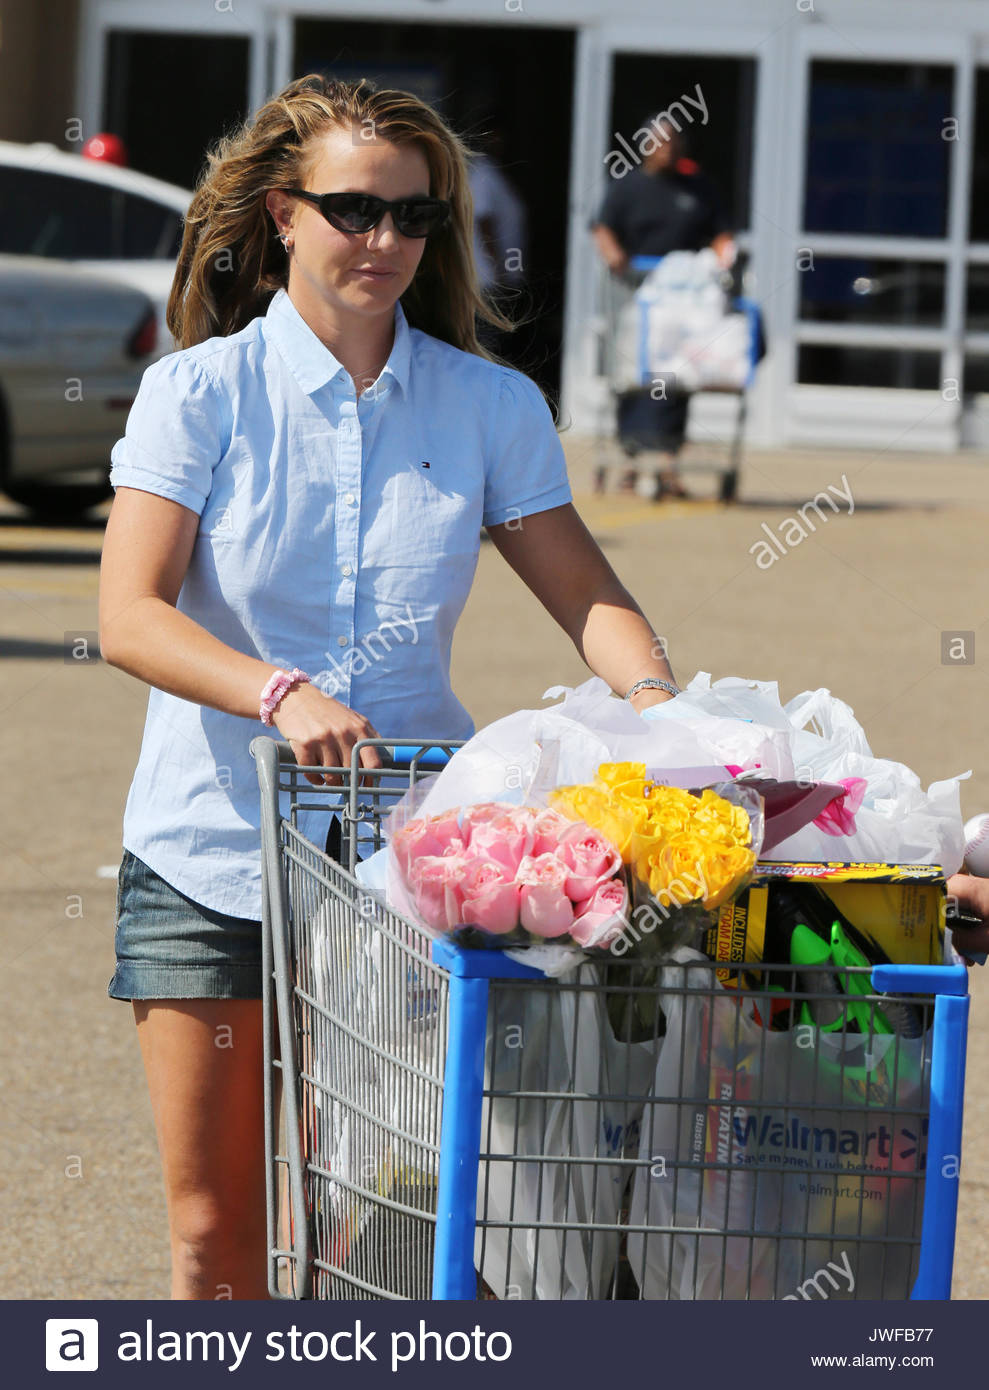 Britney spears britney spears shops for easter gifts in her britney spears shops for easter gifts in her hometown of kentwood la the singer stopped off at walmart to buy flowers and gifts for her family negle Images